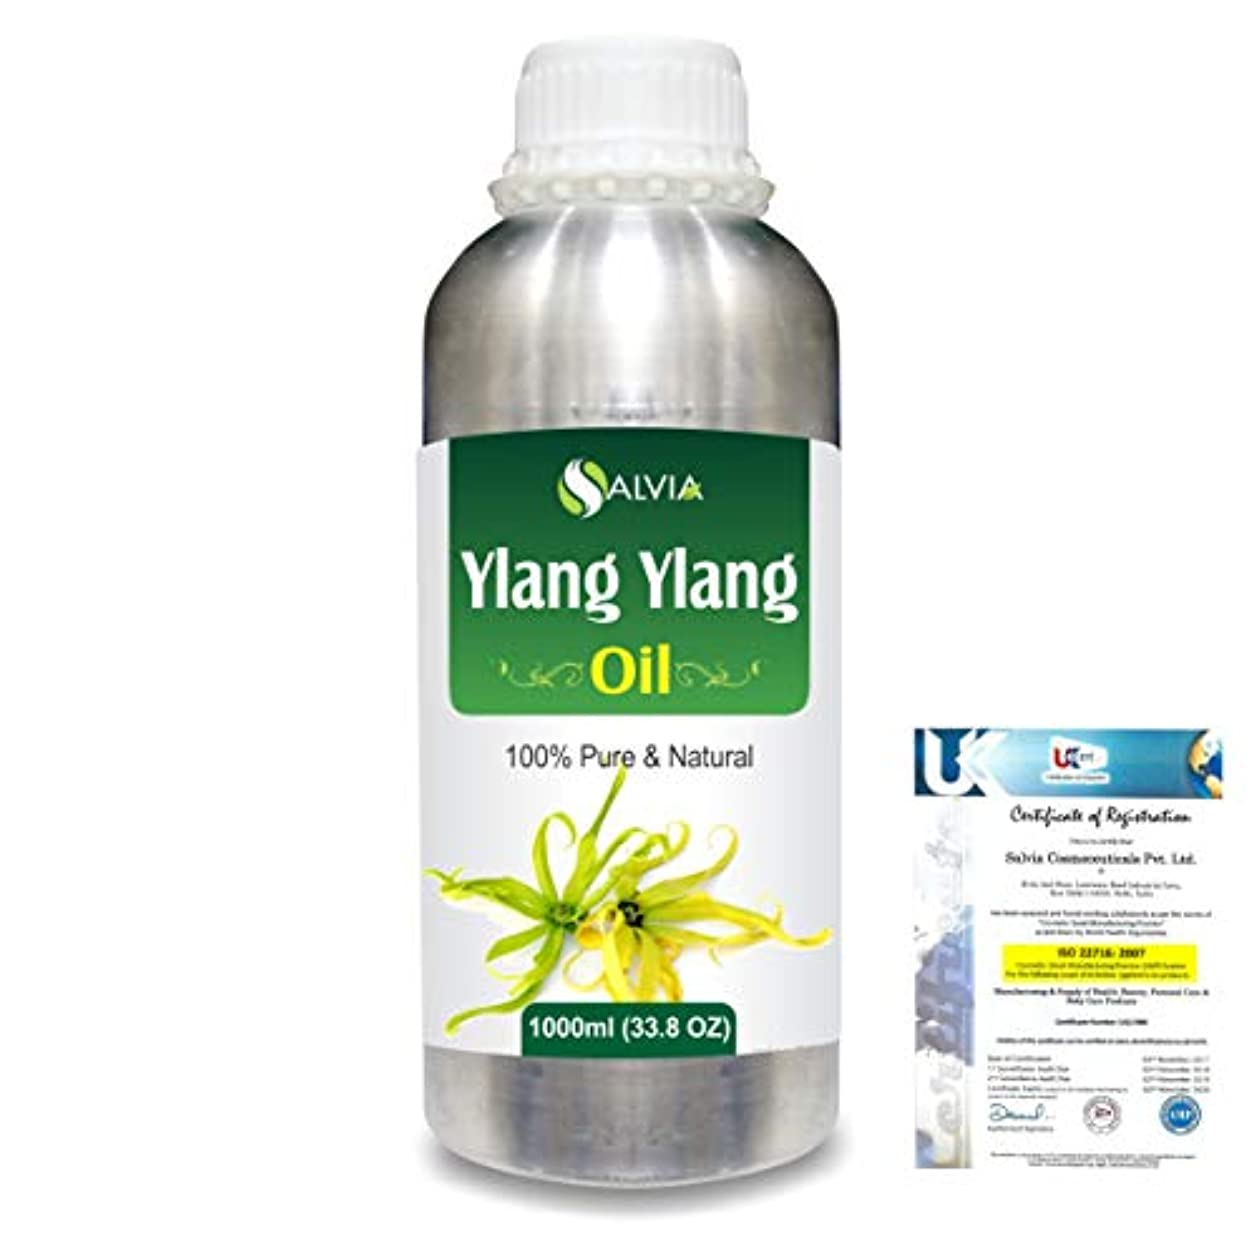 Ylang Ylang (Cananga Odorata) 100% Natural Pure Essential Oil 1000ml/33.8fl.oz.